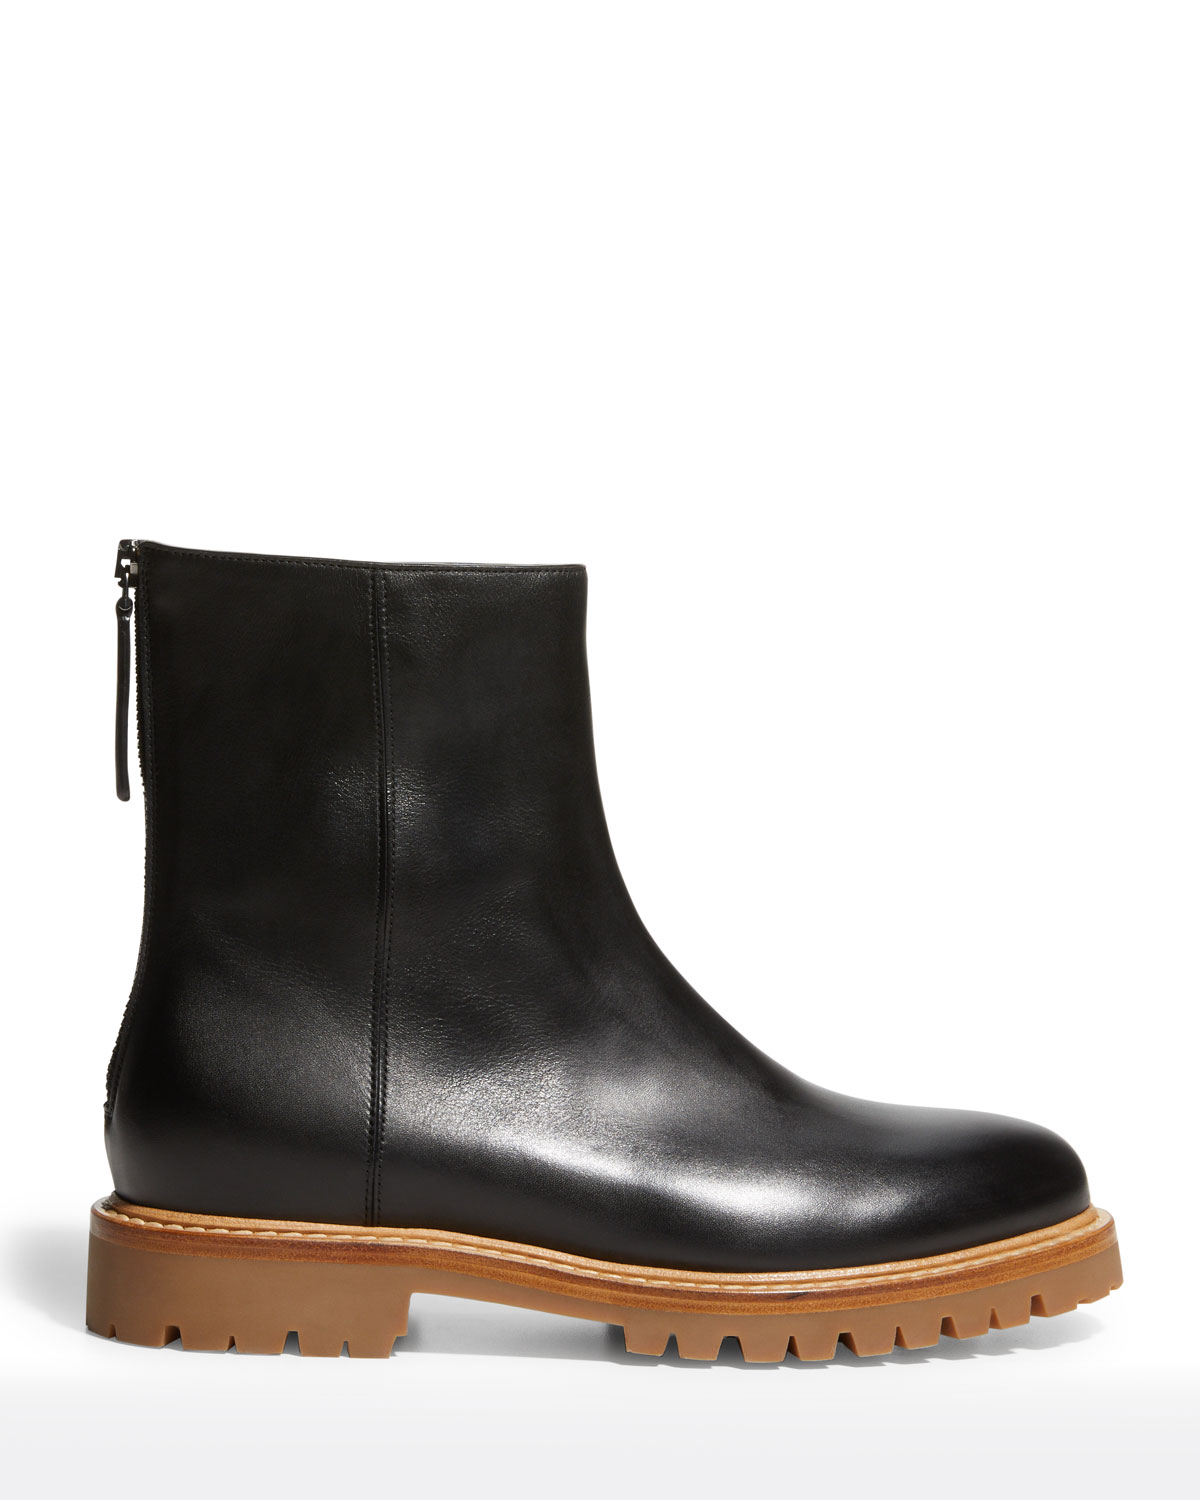 New Officer Leather Short Zip Boots